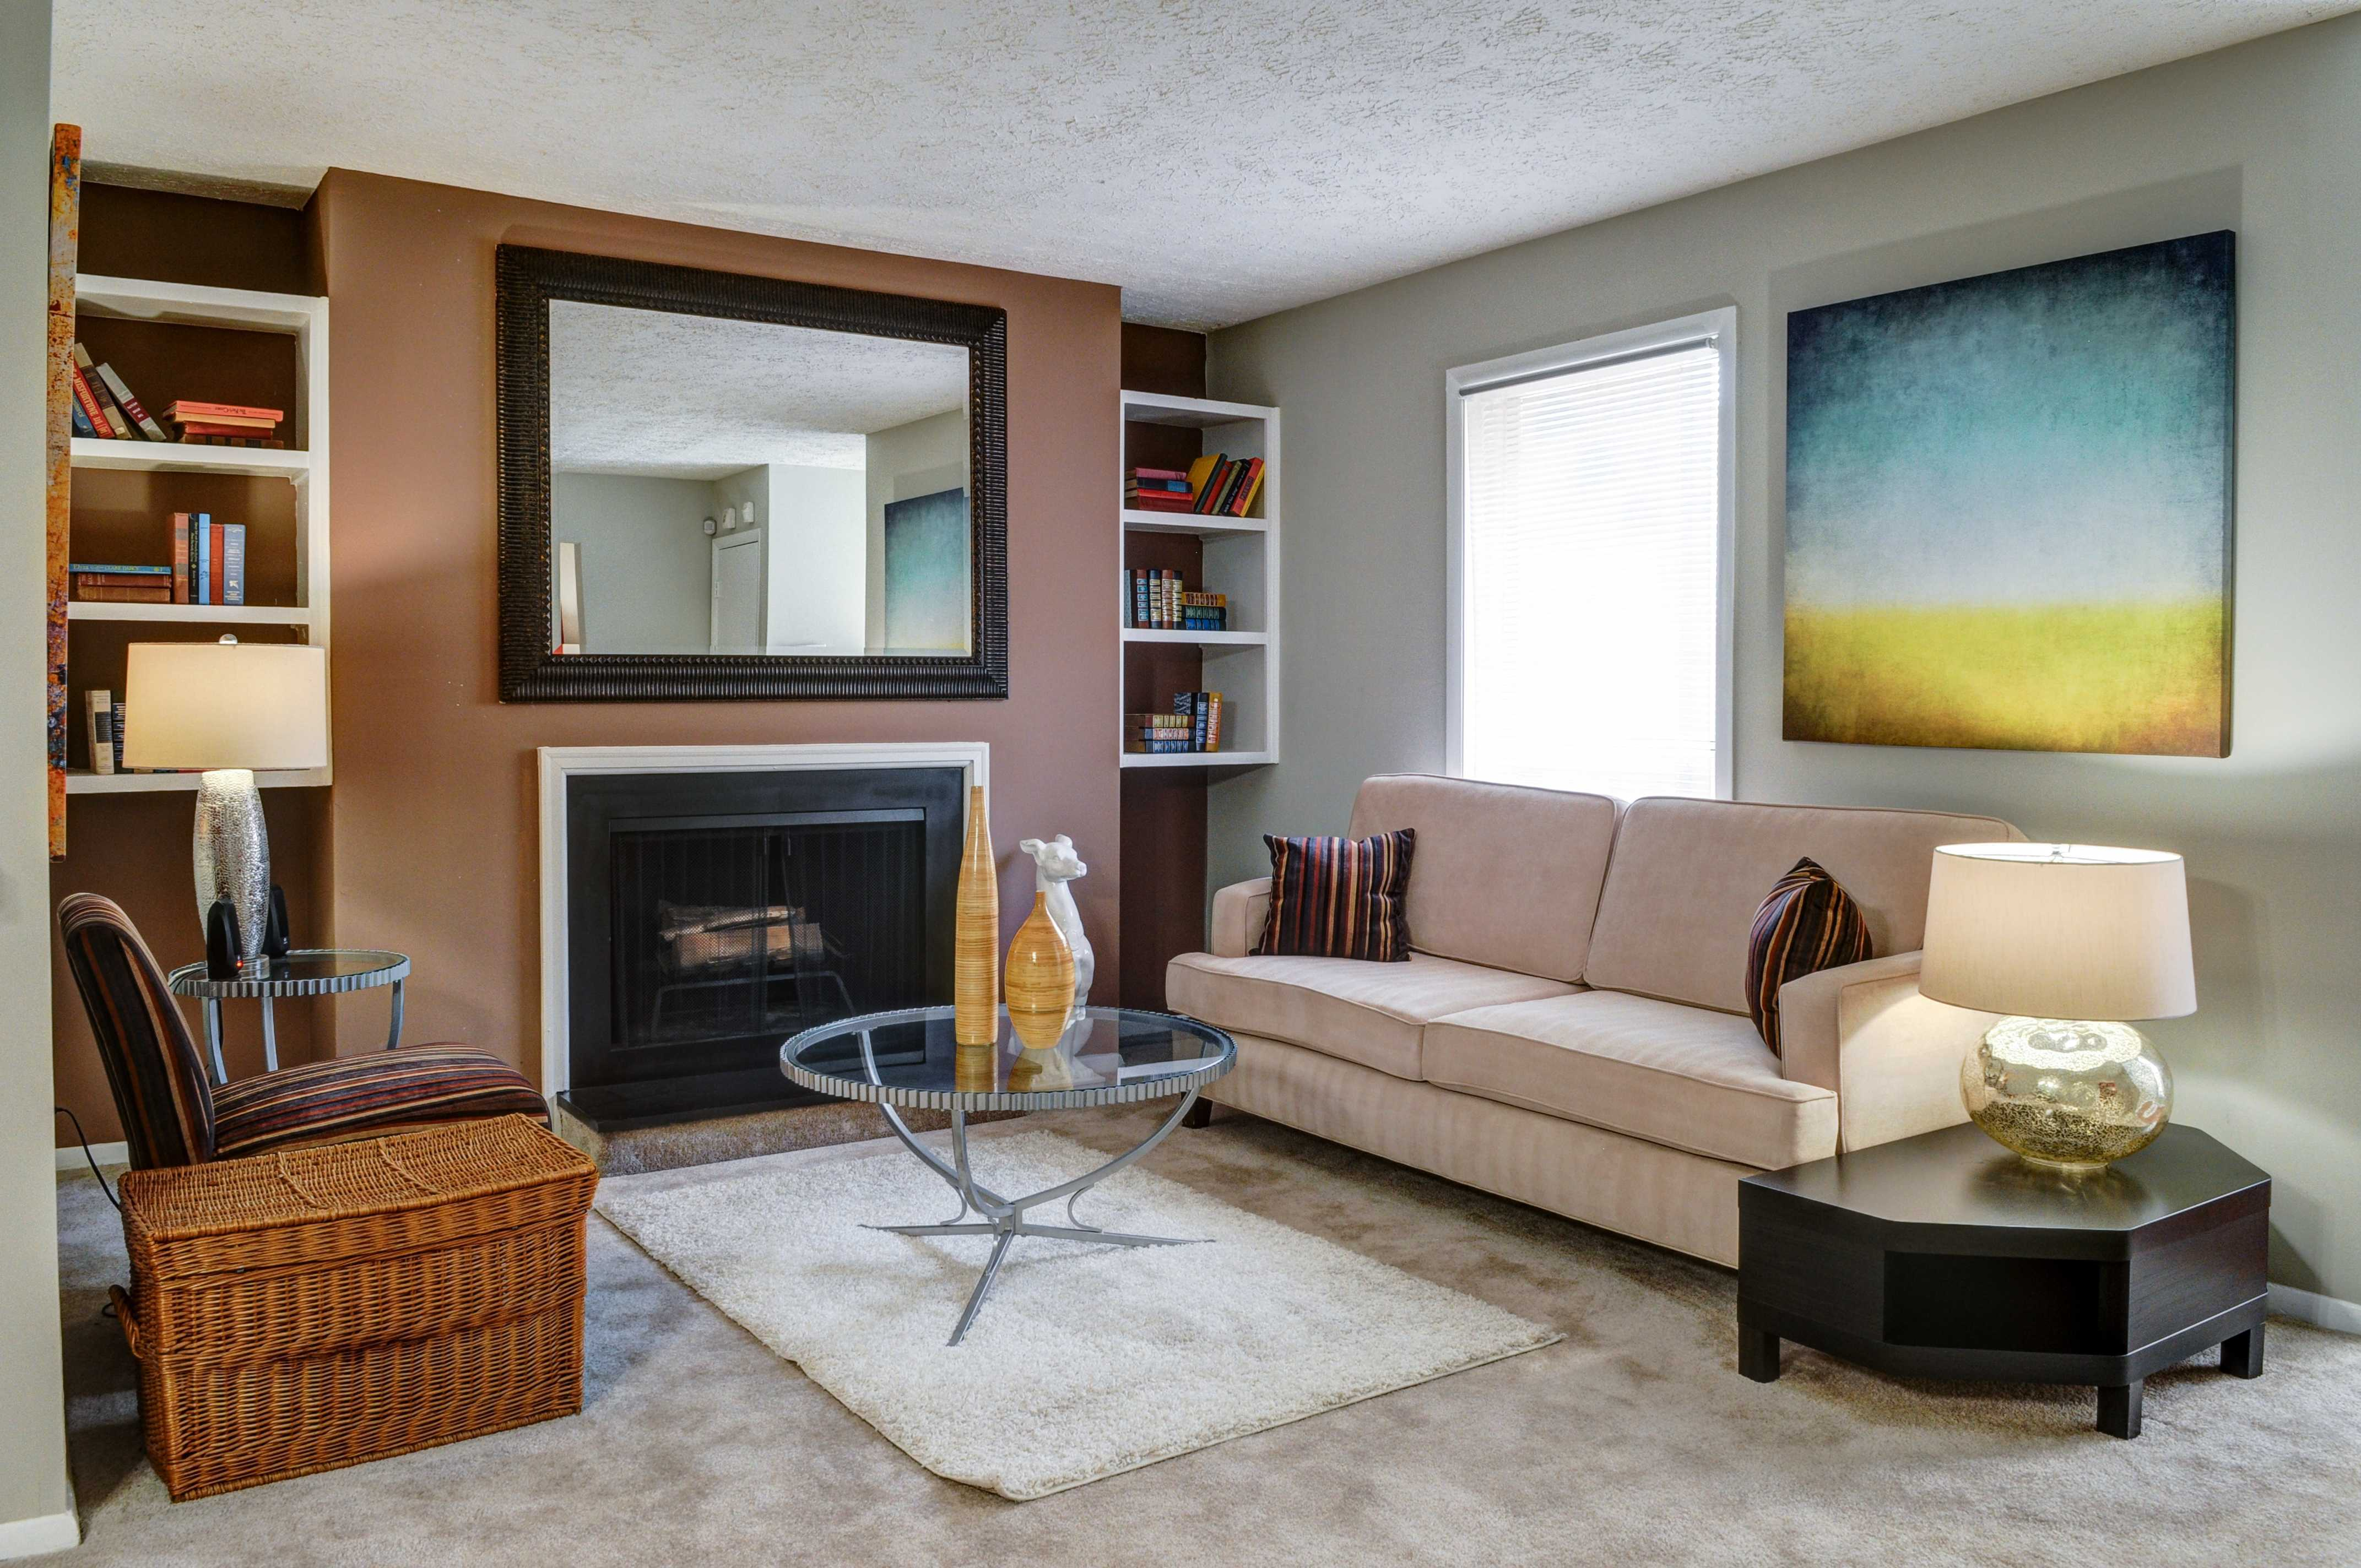 Dunwoody Crossing Reviews Apartments At 700 Summit Place Dr